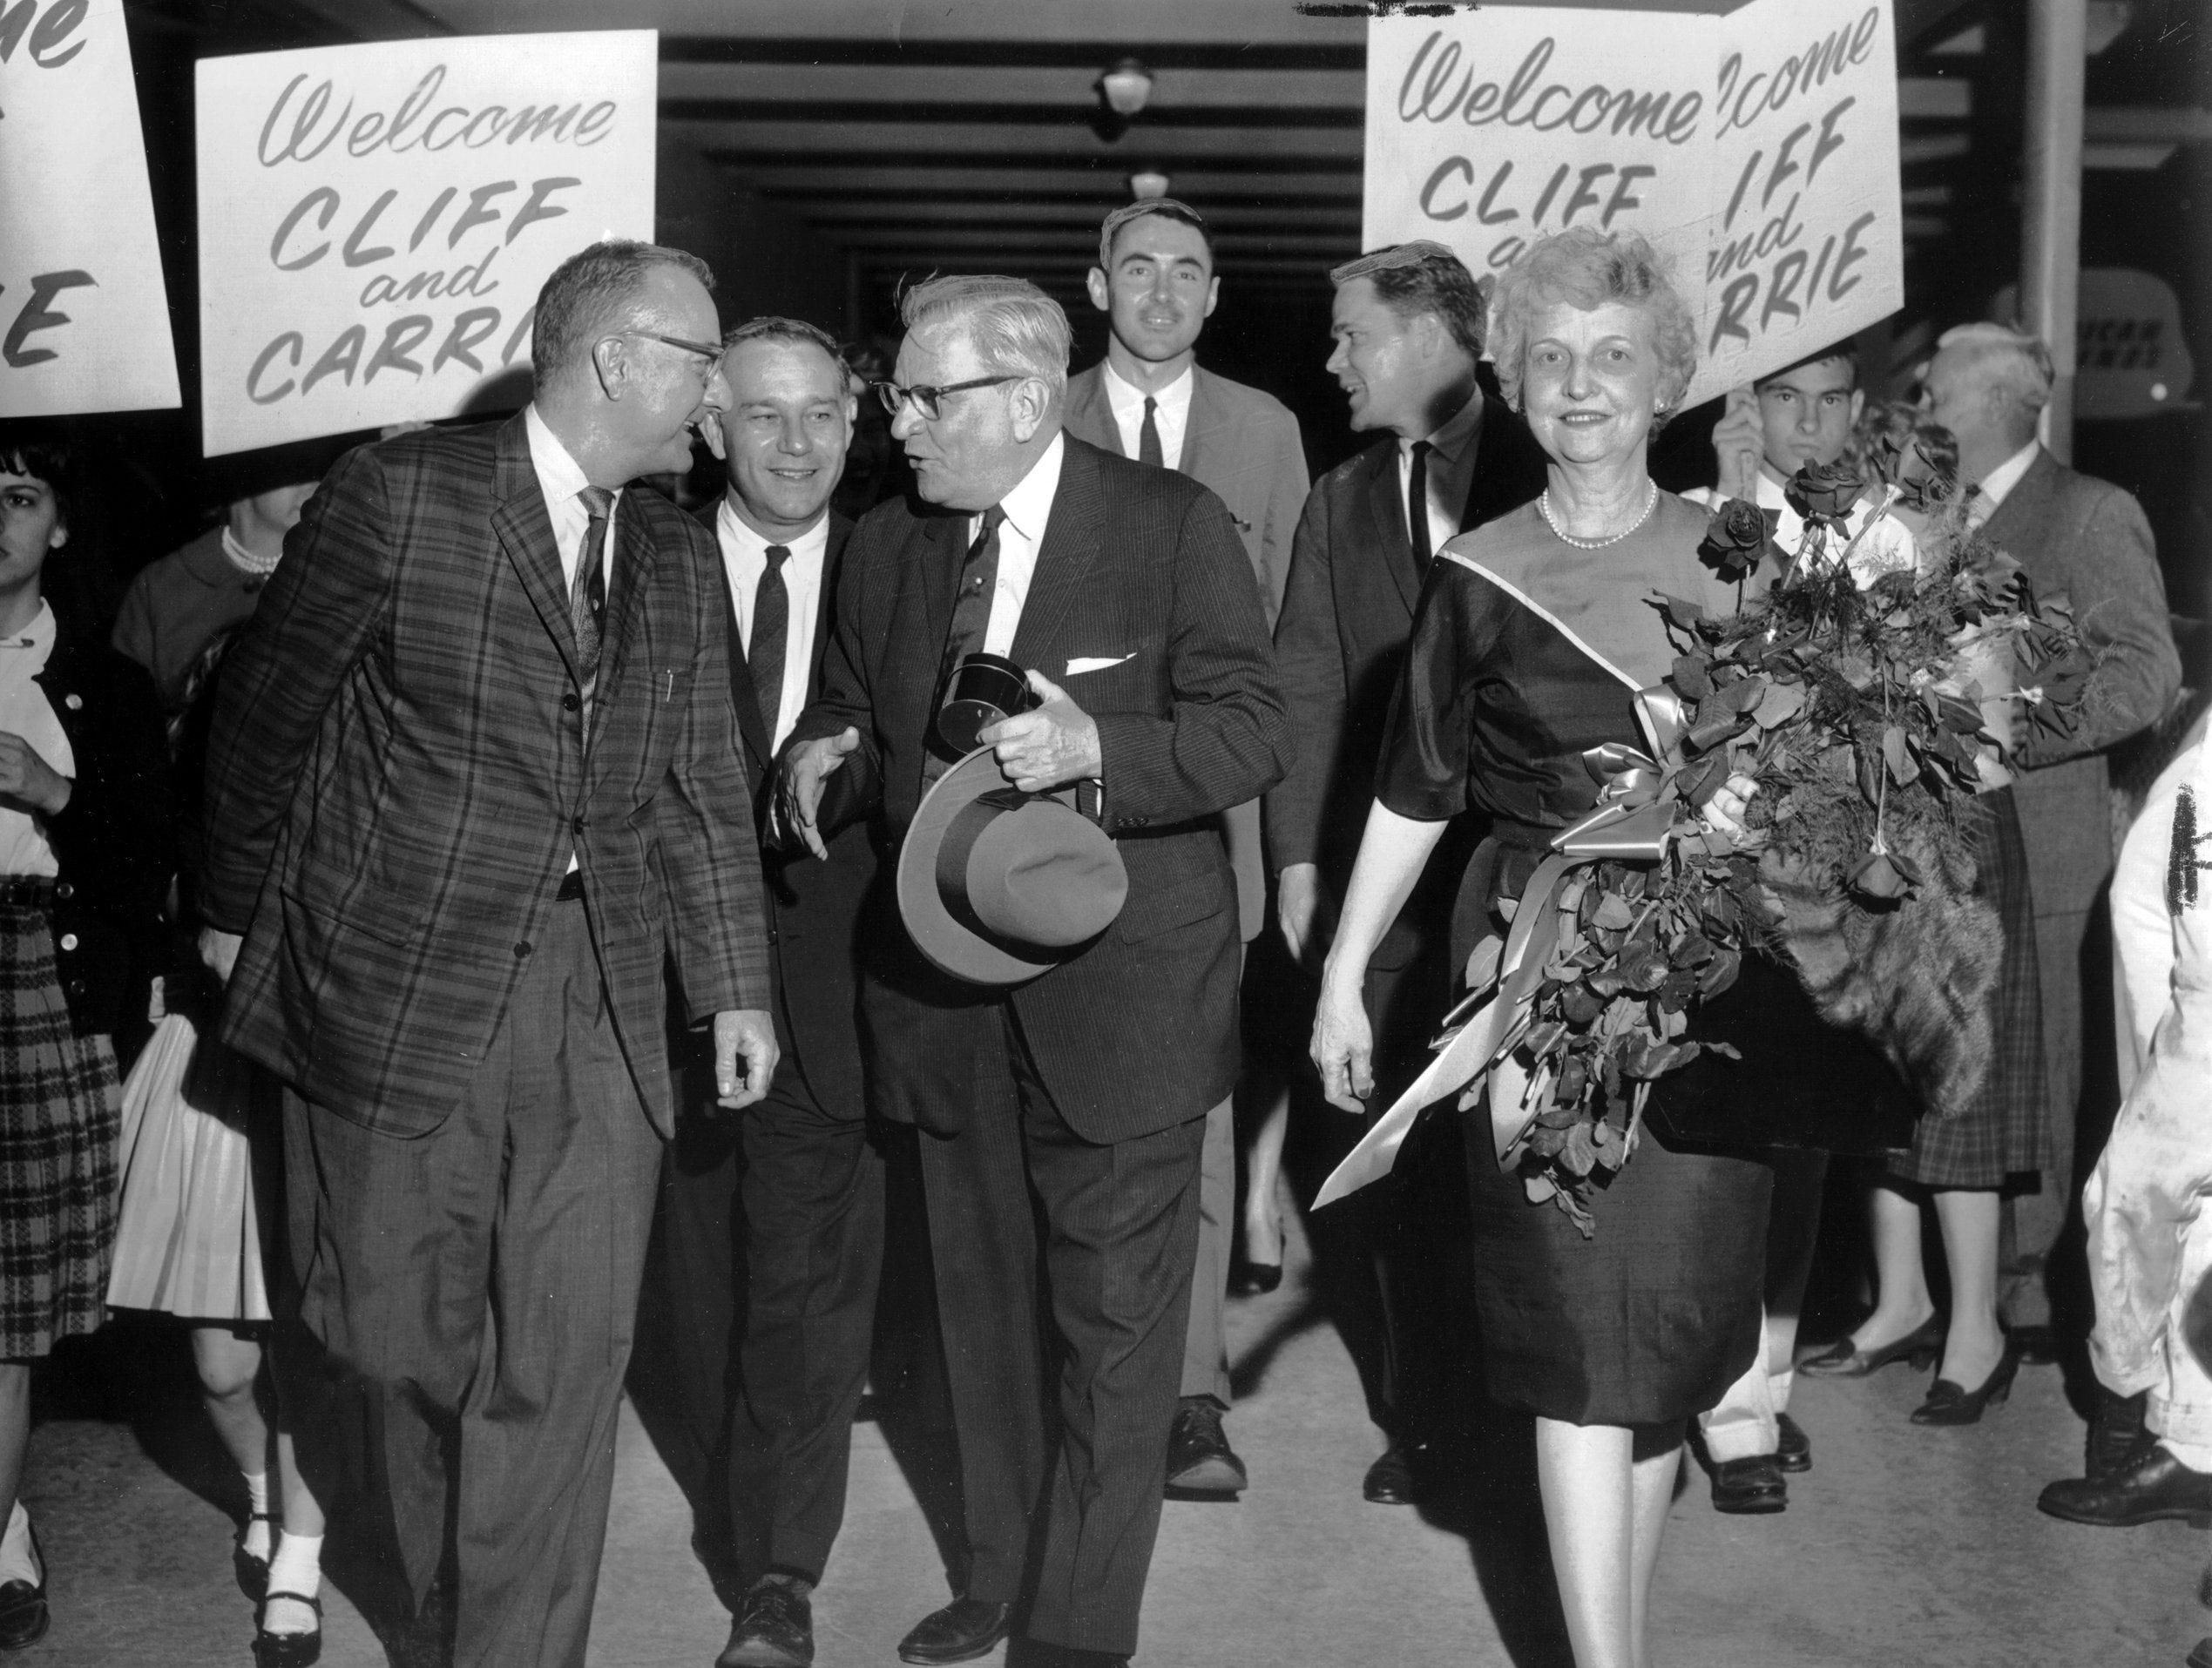 John Ford Canale (Left) and James Irwin (Center) were two of the supporters of Representative Clifford Davis (hat in hand) who met the veteran lawmaker on 17 Oct 1962 when he and Mrs. Davis arrived at Municipal Airport on their return from Washington.